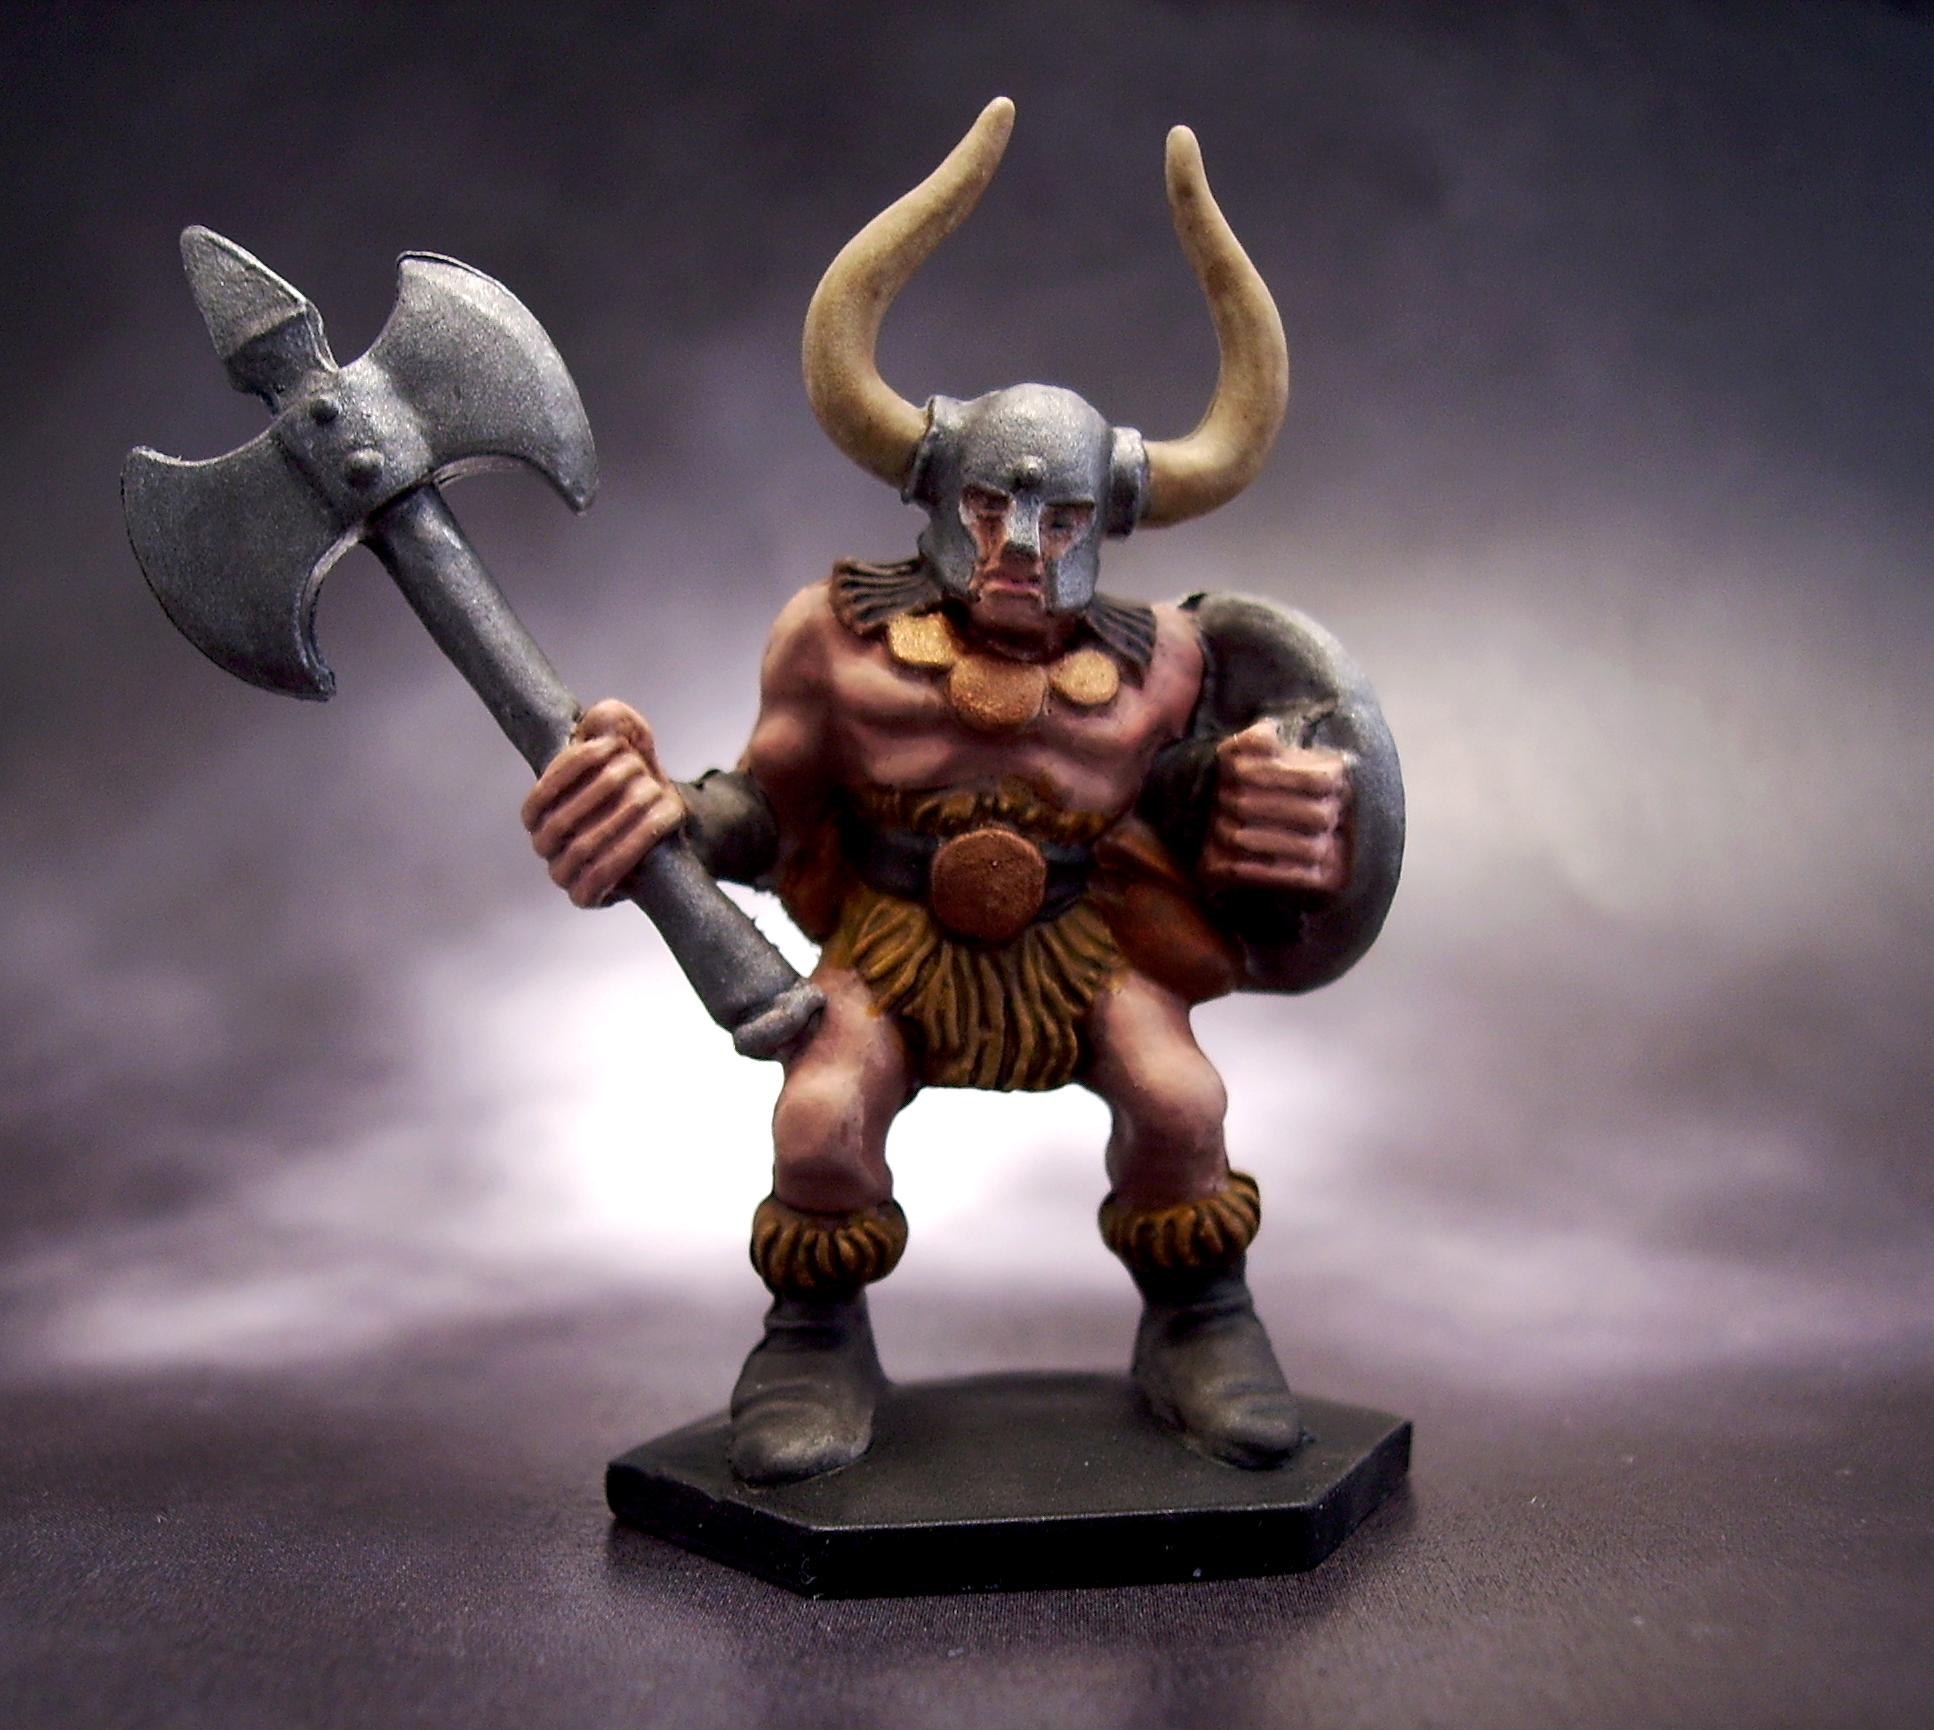 Barbarian, Dungeonquest